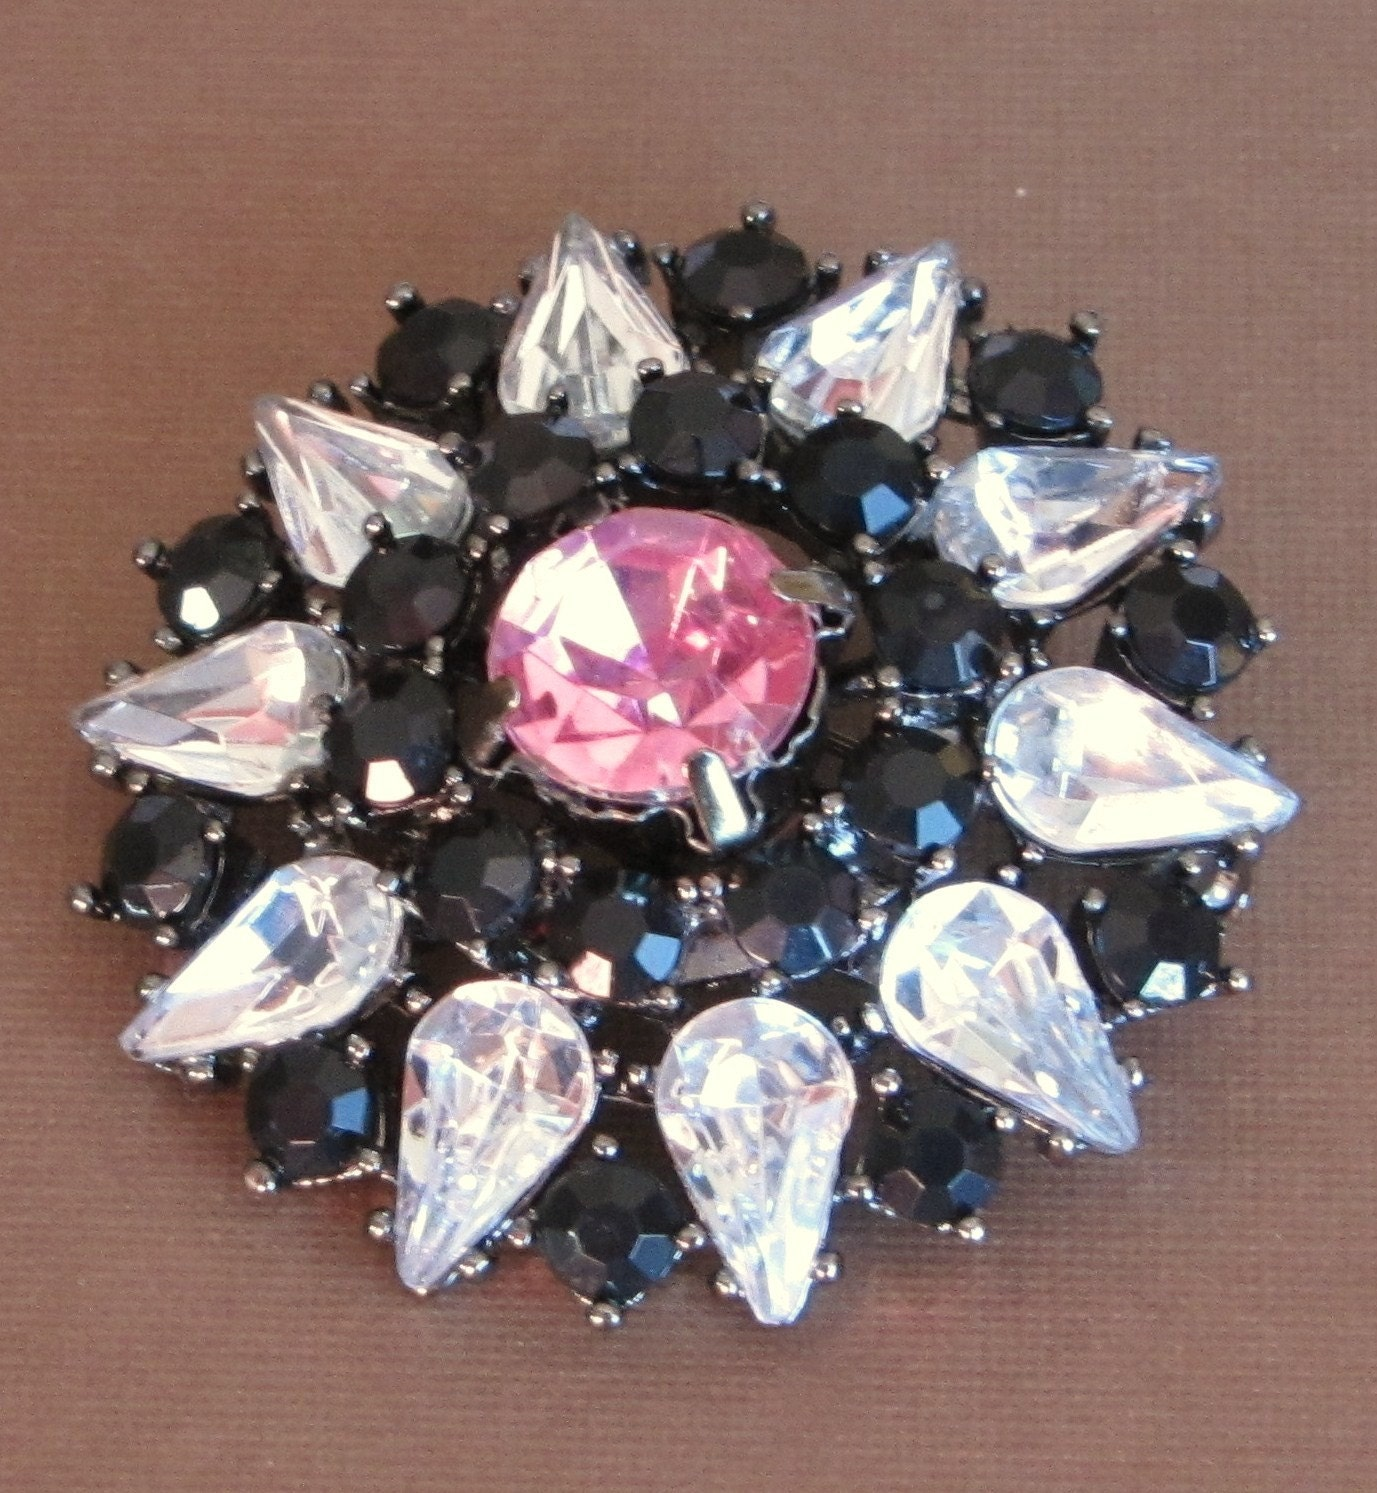 SALE Vintage, Antique, Brooch, Pin, Rhinestones, Crystals, Black, Pink, Clear, Wedding, Wedding Jewelry, www.jodaycraf.etsy.com